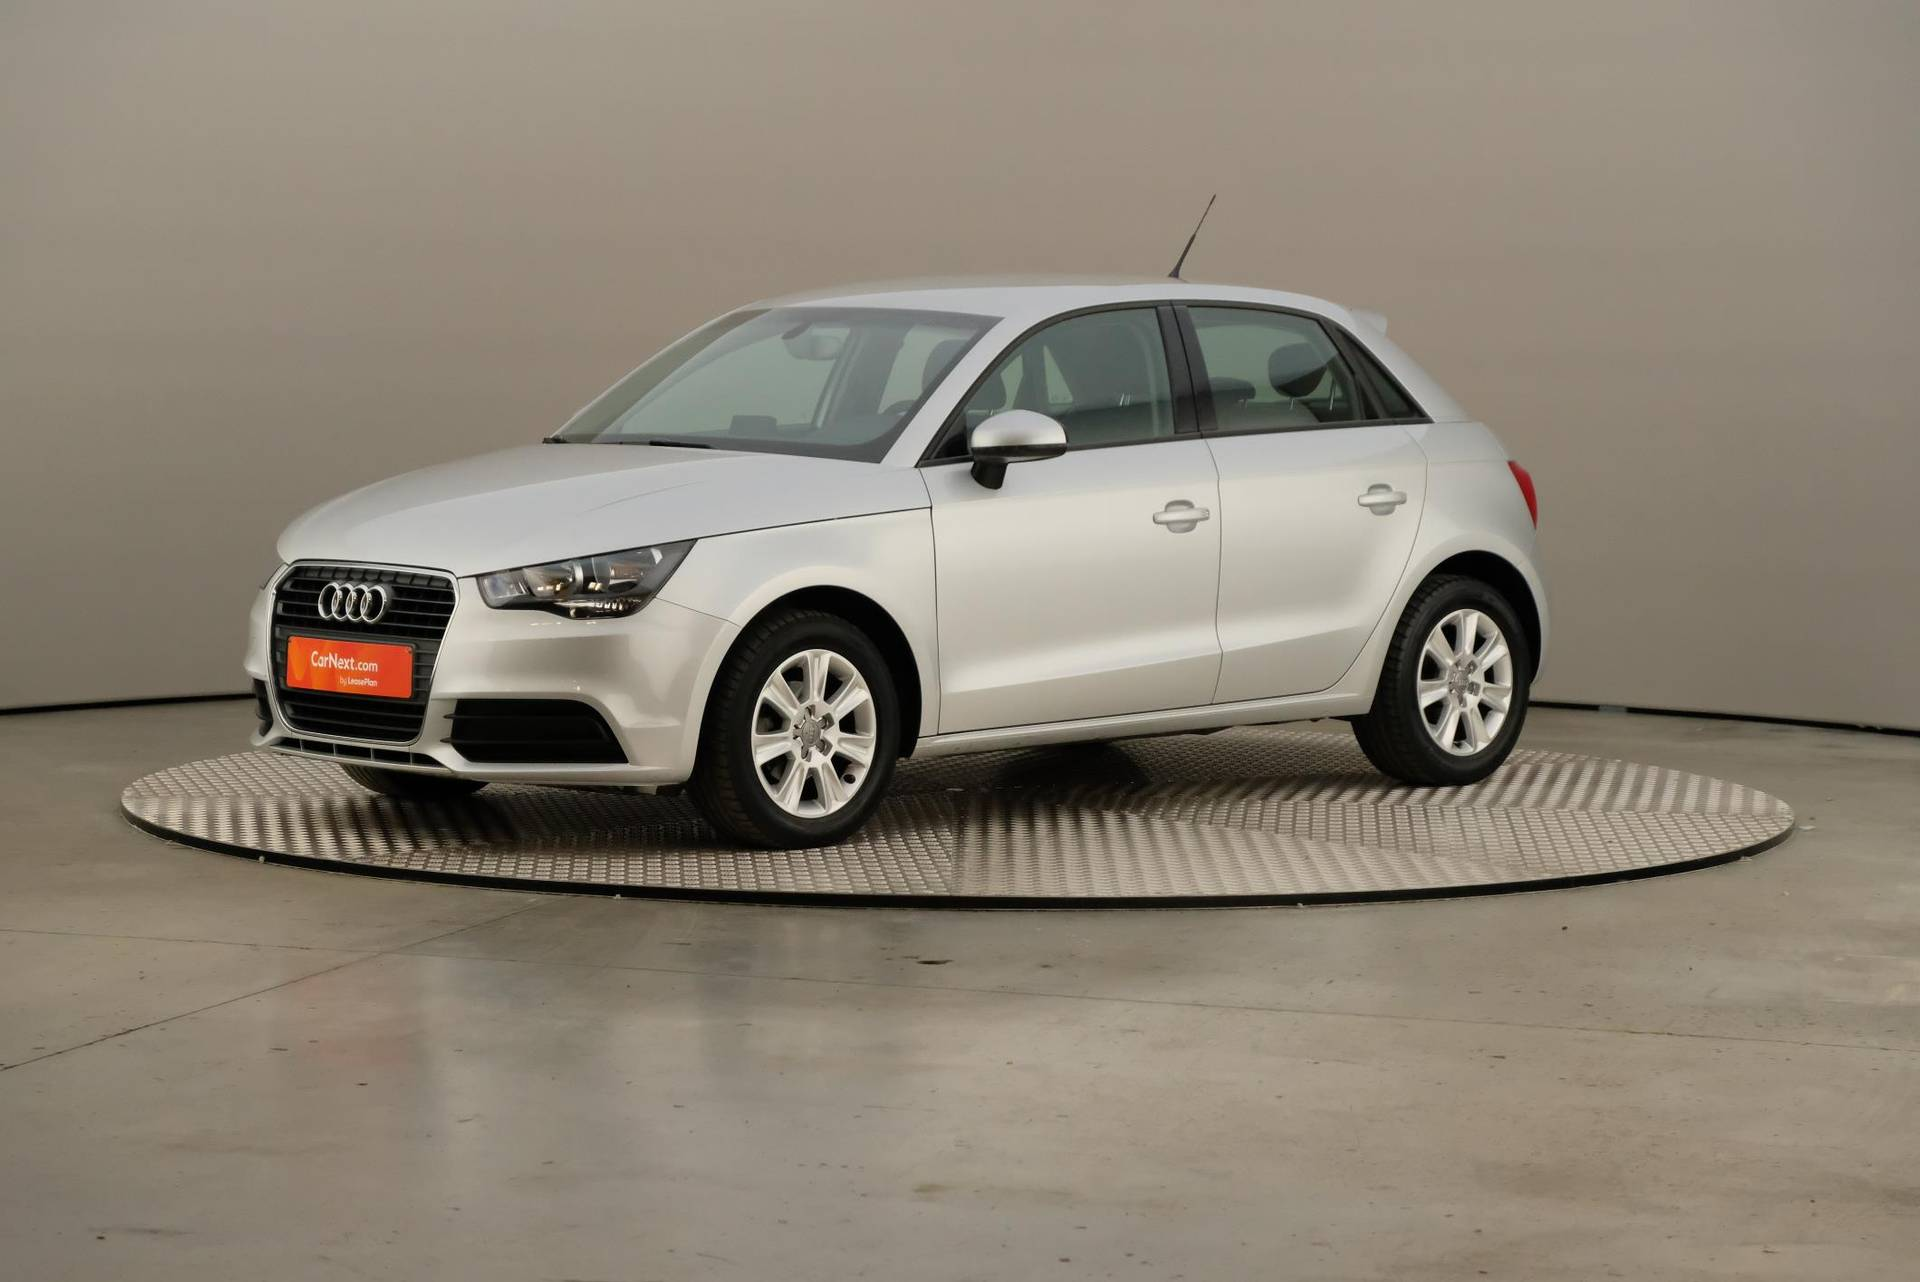 Audi A1 1.6 TDI Sportback, Attraction S&S PDC BT, 360-image0